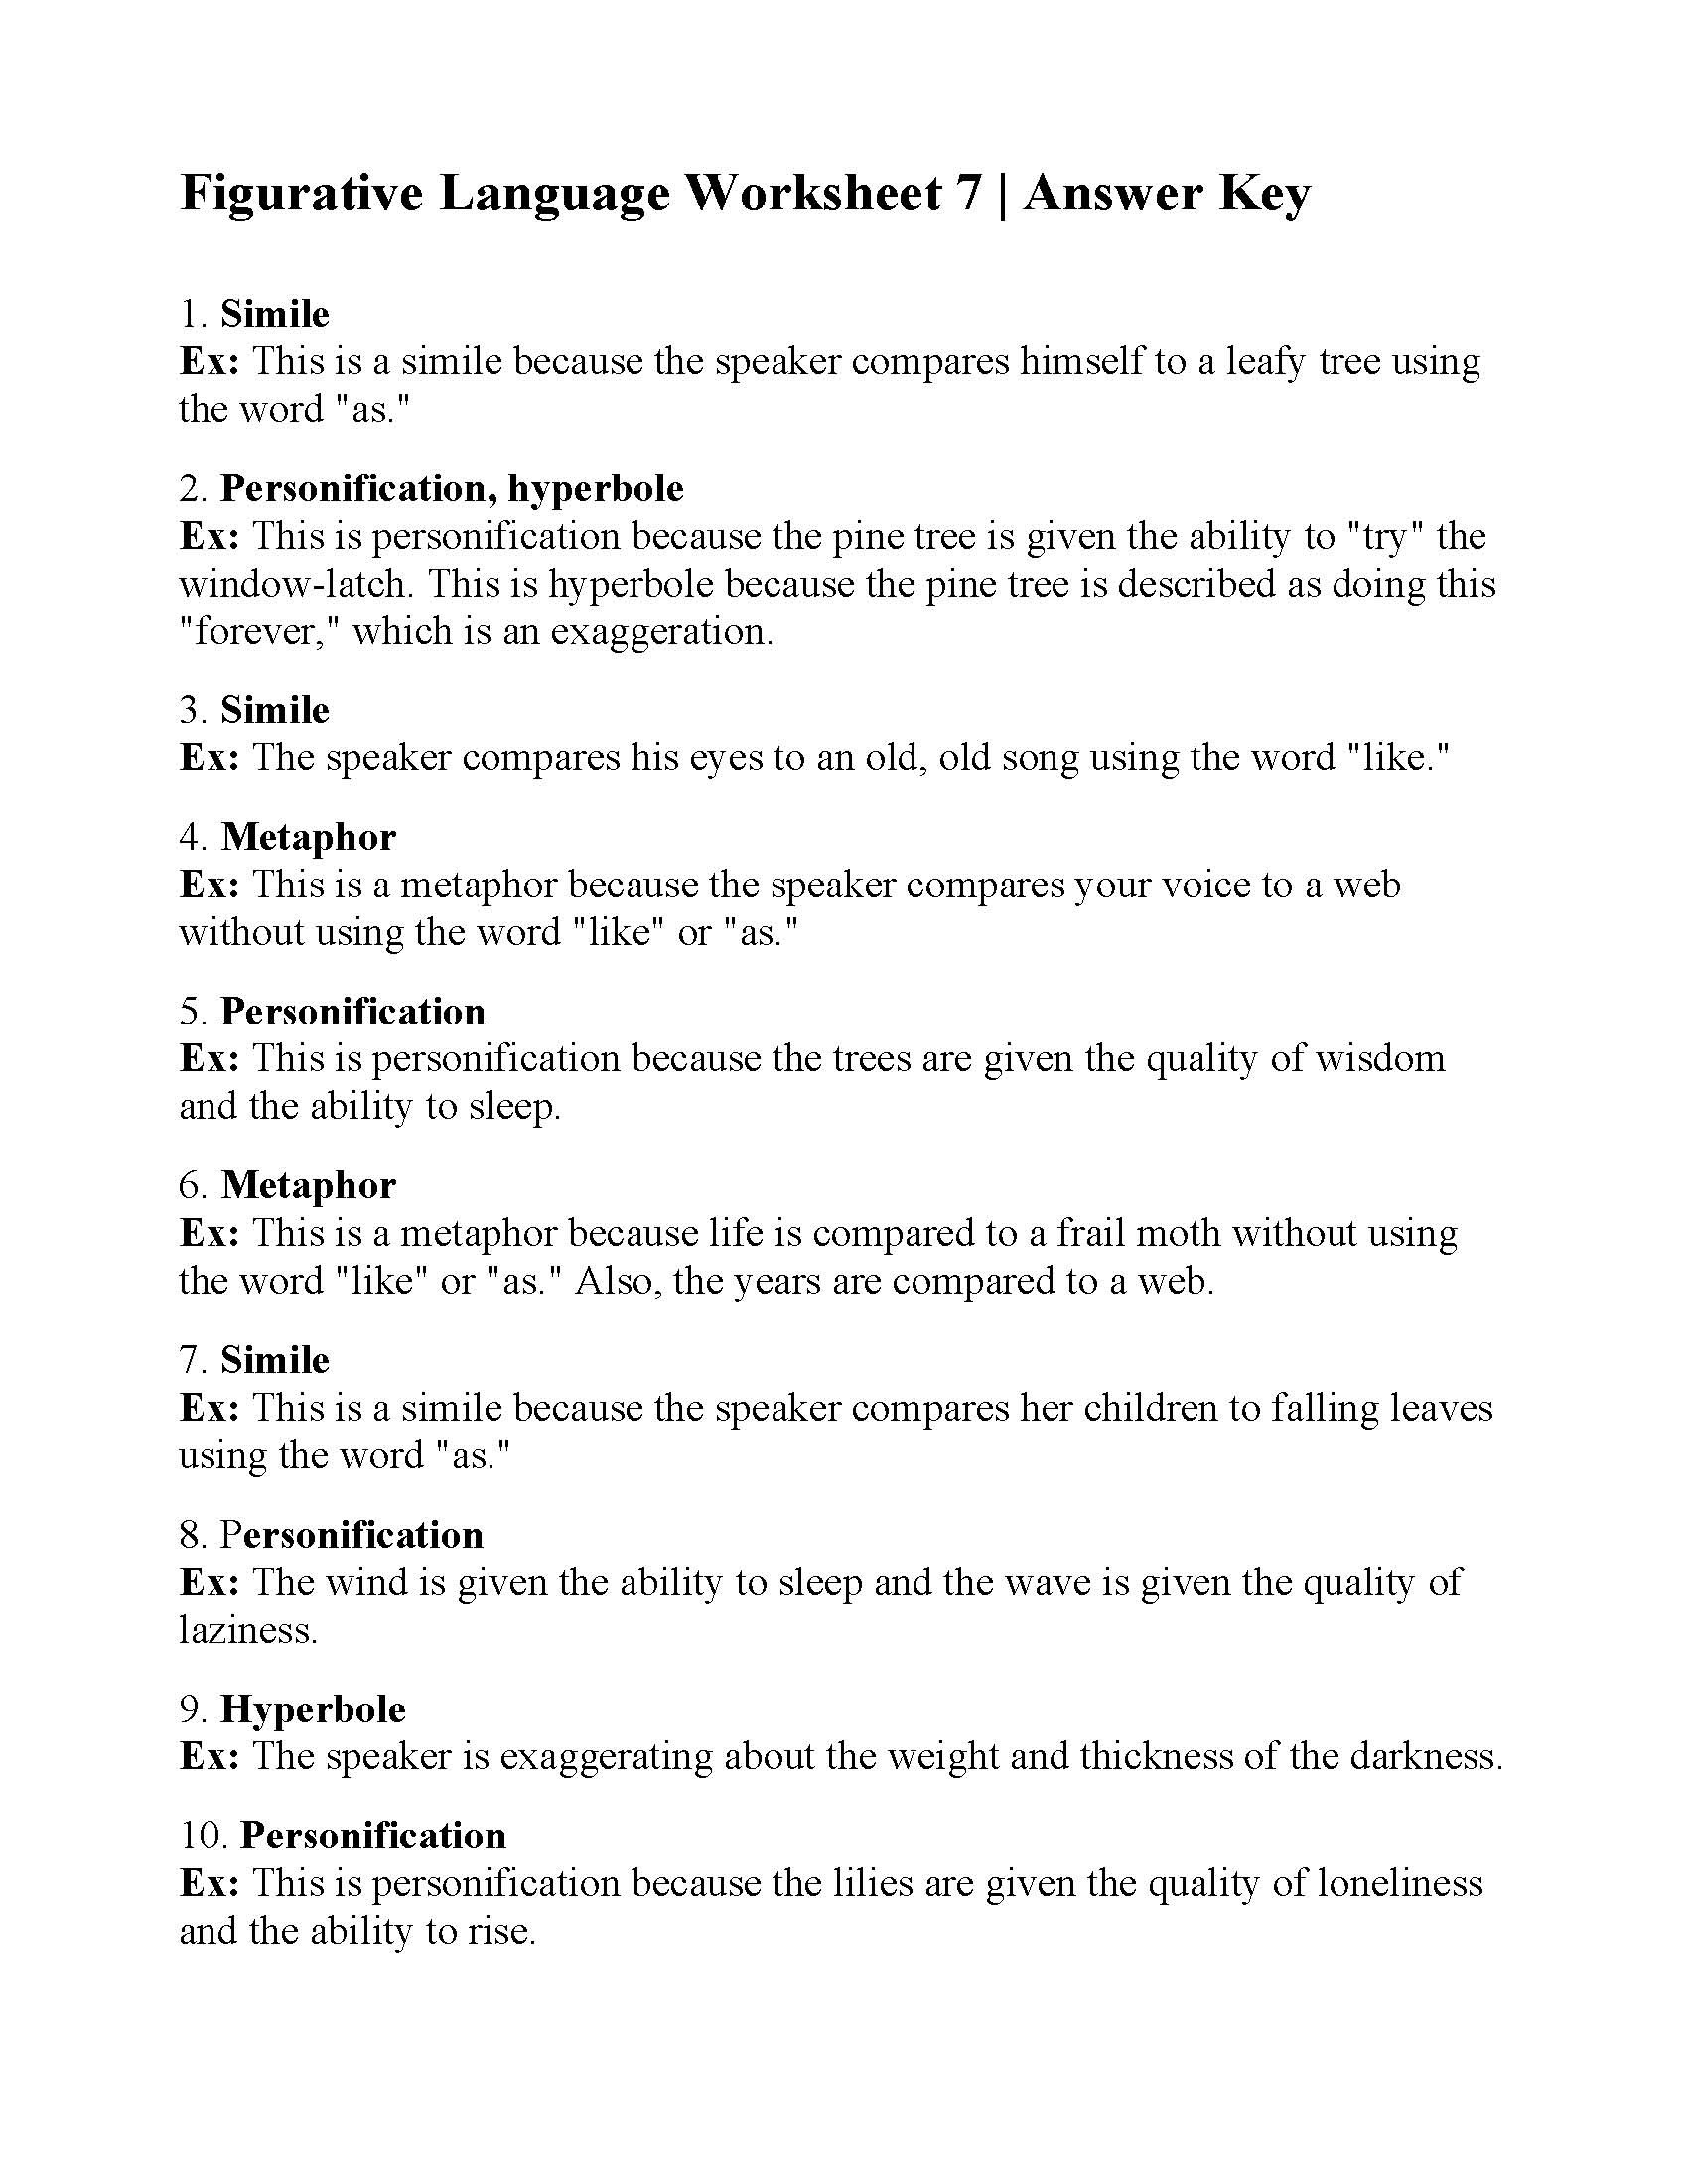 Figurative Language Worksheet High School 6 Digit Addition Worksheets Like and Unlike Decimals